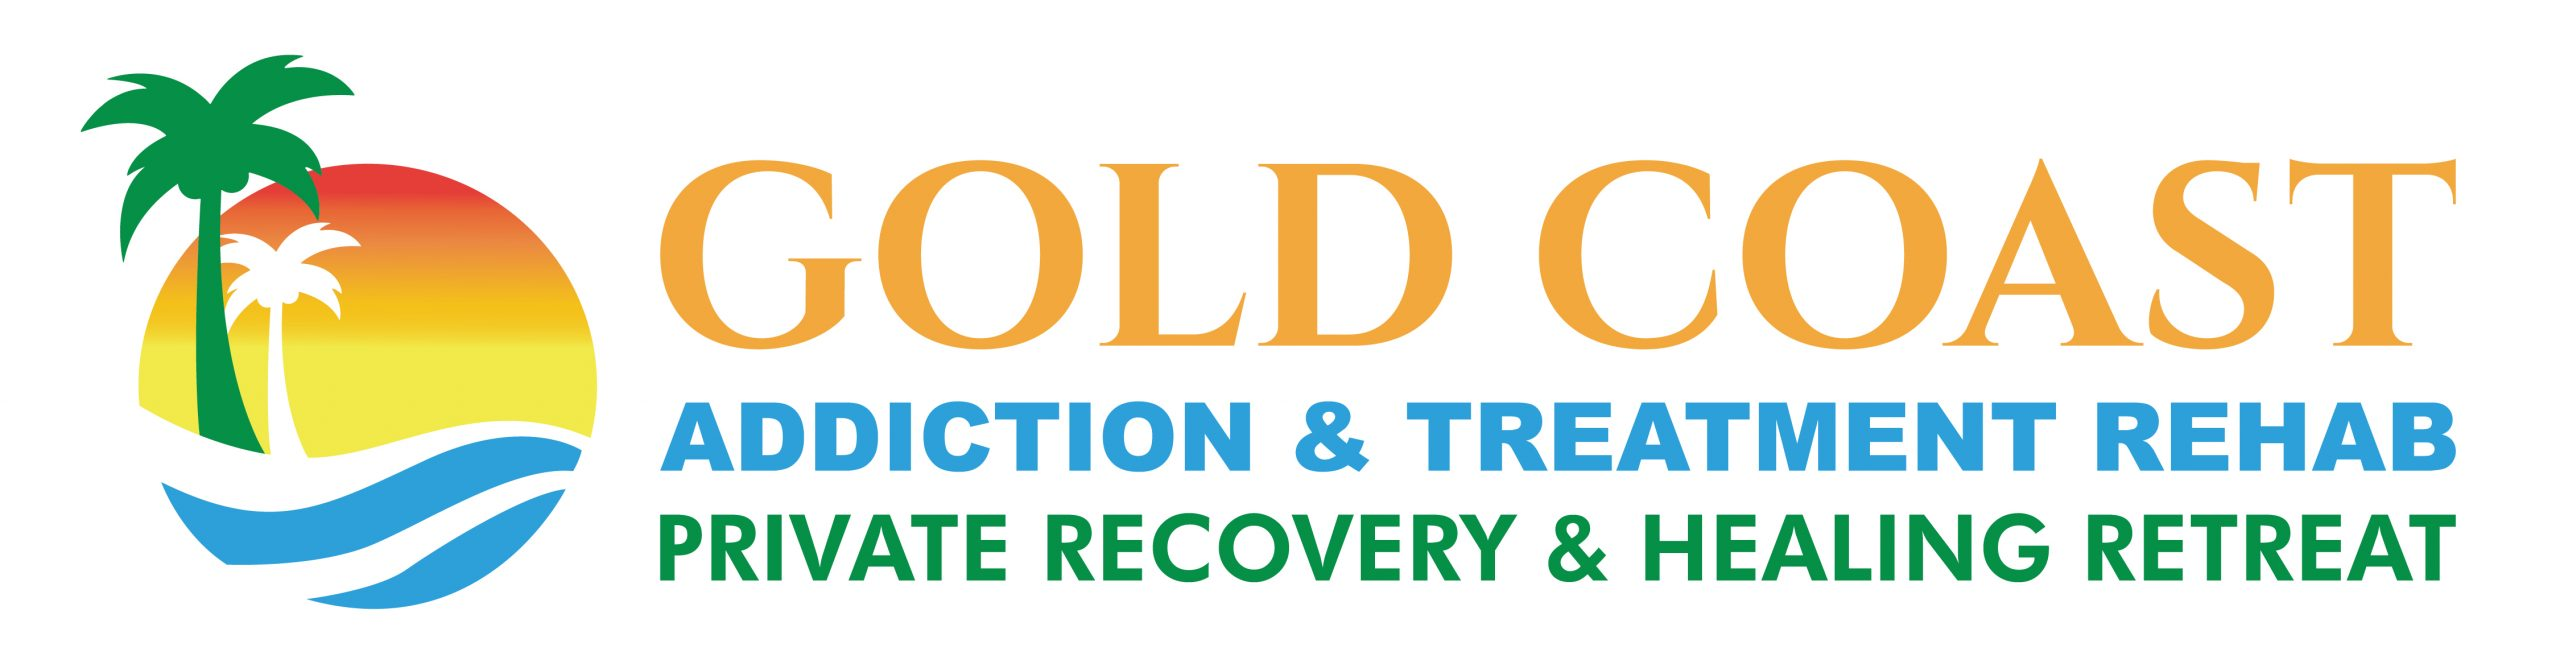 https://goldcoastaddictionandtreatmentrehab.com/